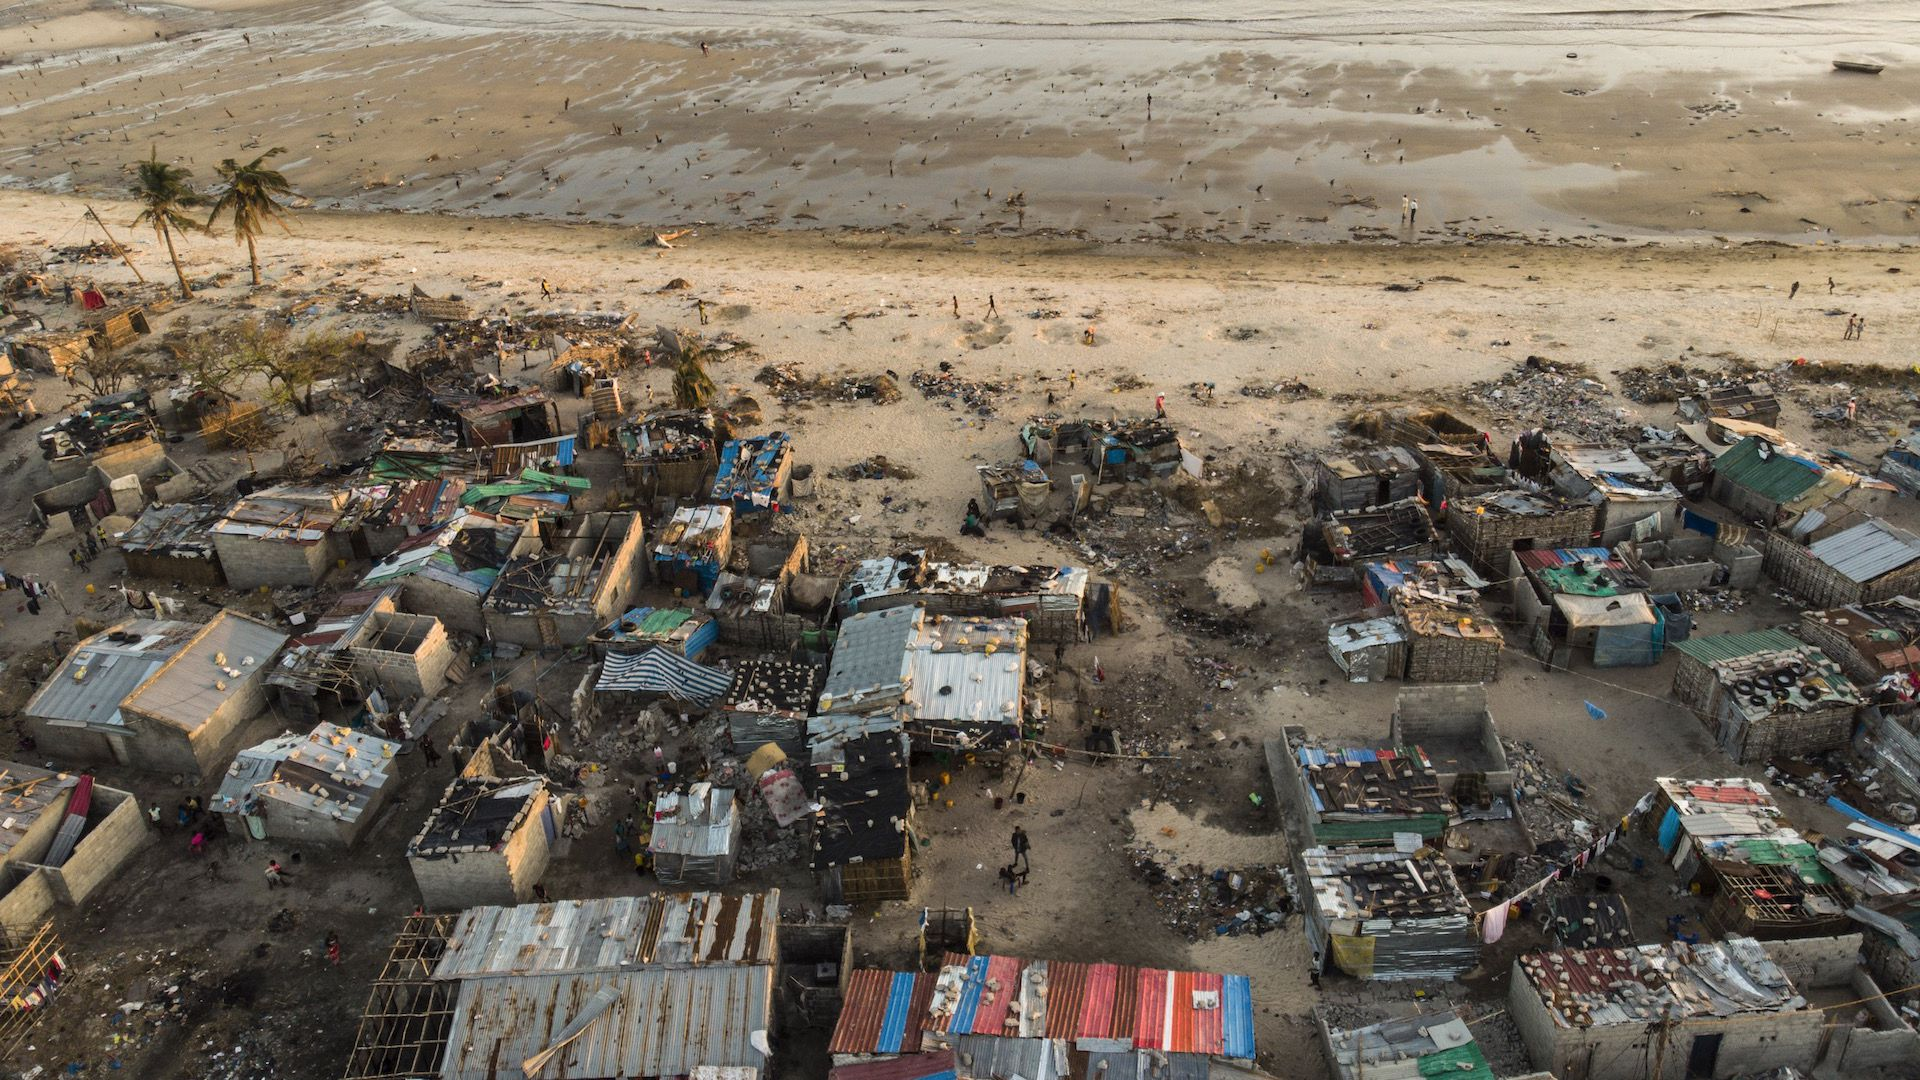 Debris and destroyed buildings which stood in the path of Cyclone Idai can be seen in this aerial photograph over the Praia Nova neighborhood of Beira, Mozambique.